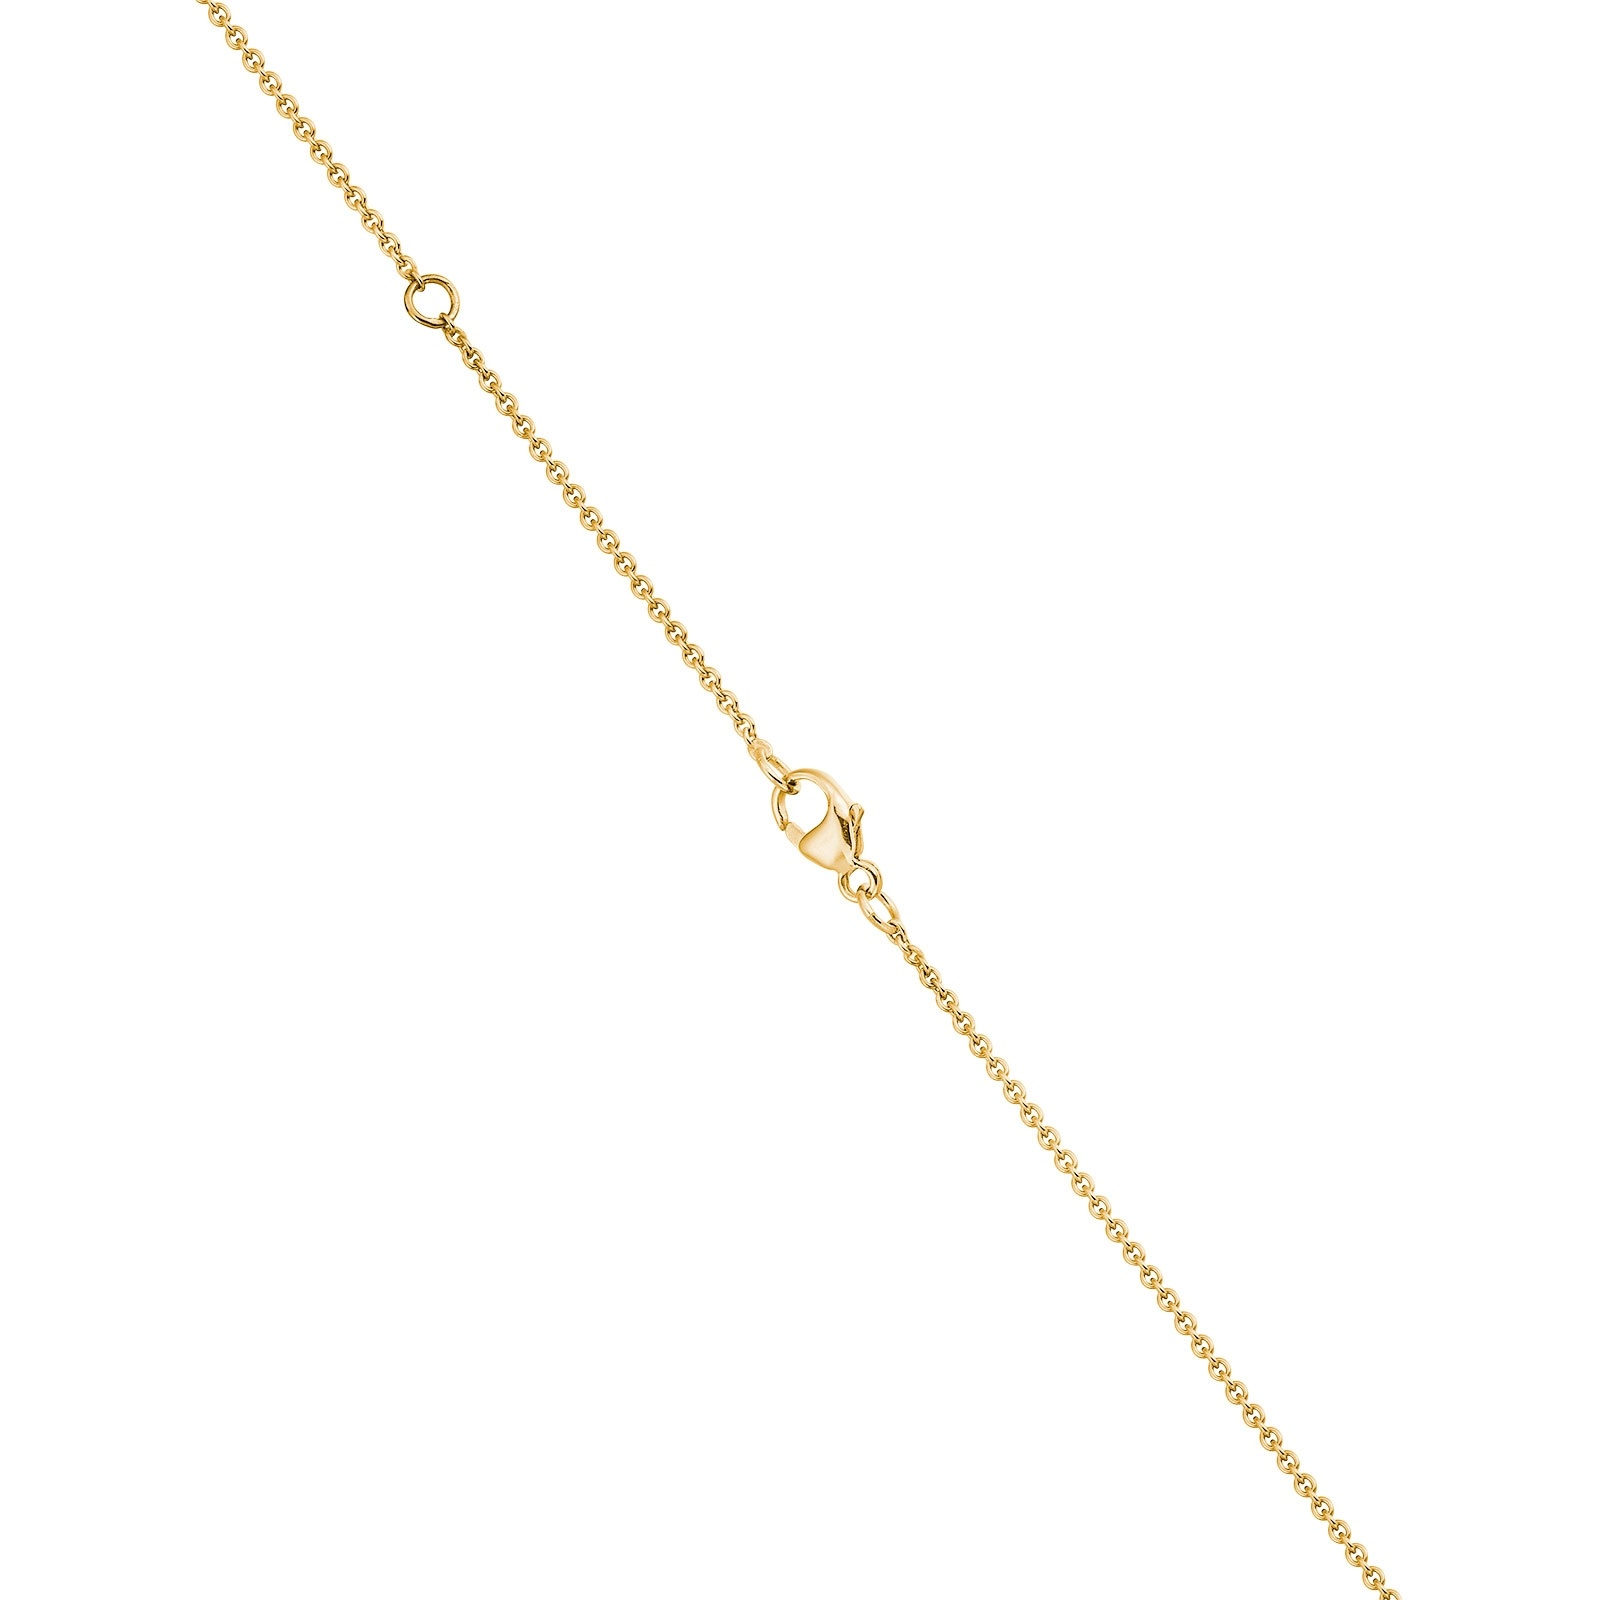 Astral Moon Pendant in Yellow Gold-PEDIYG1101-1